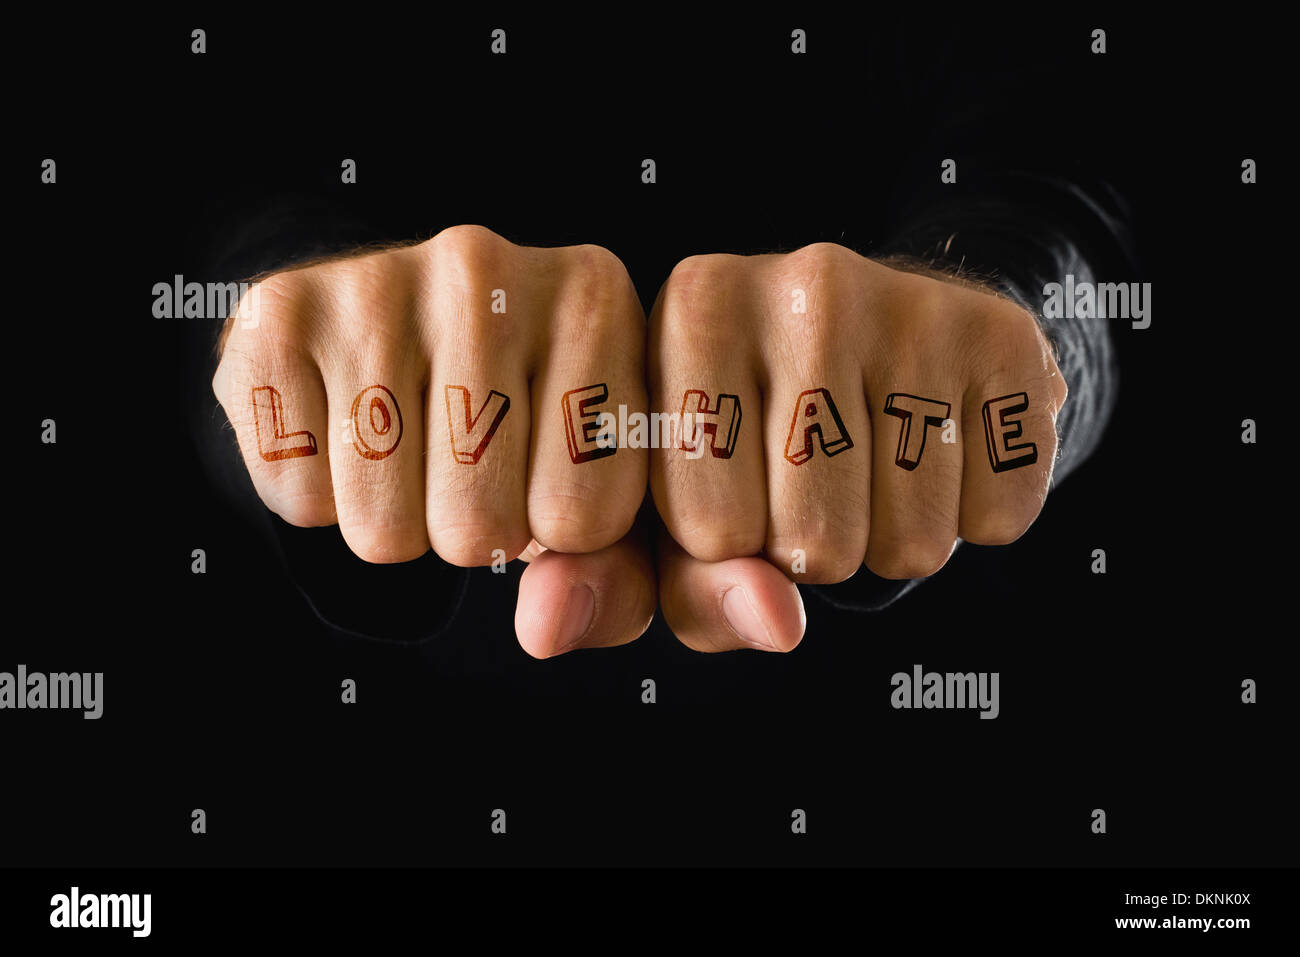 Love And Hate Tattoo Hands With Clenched Fists On Dark Background